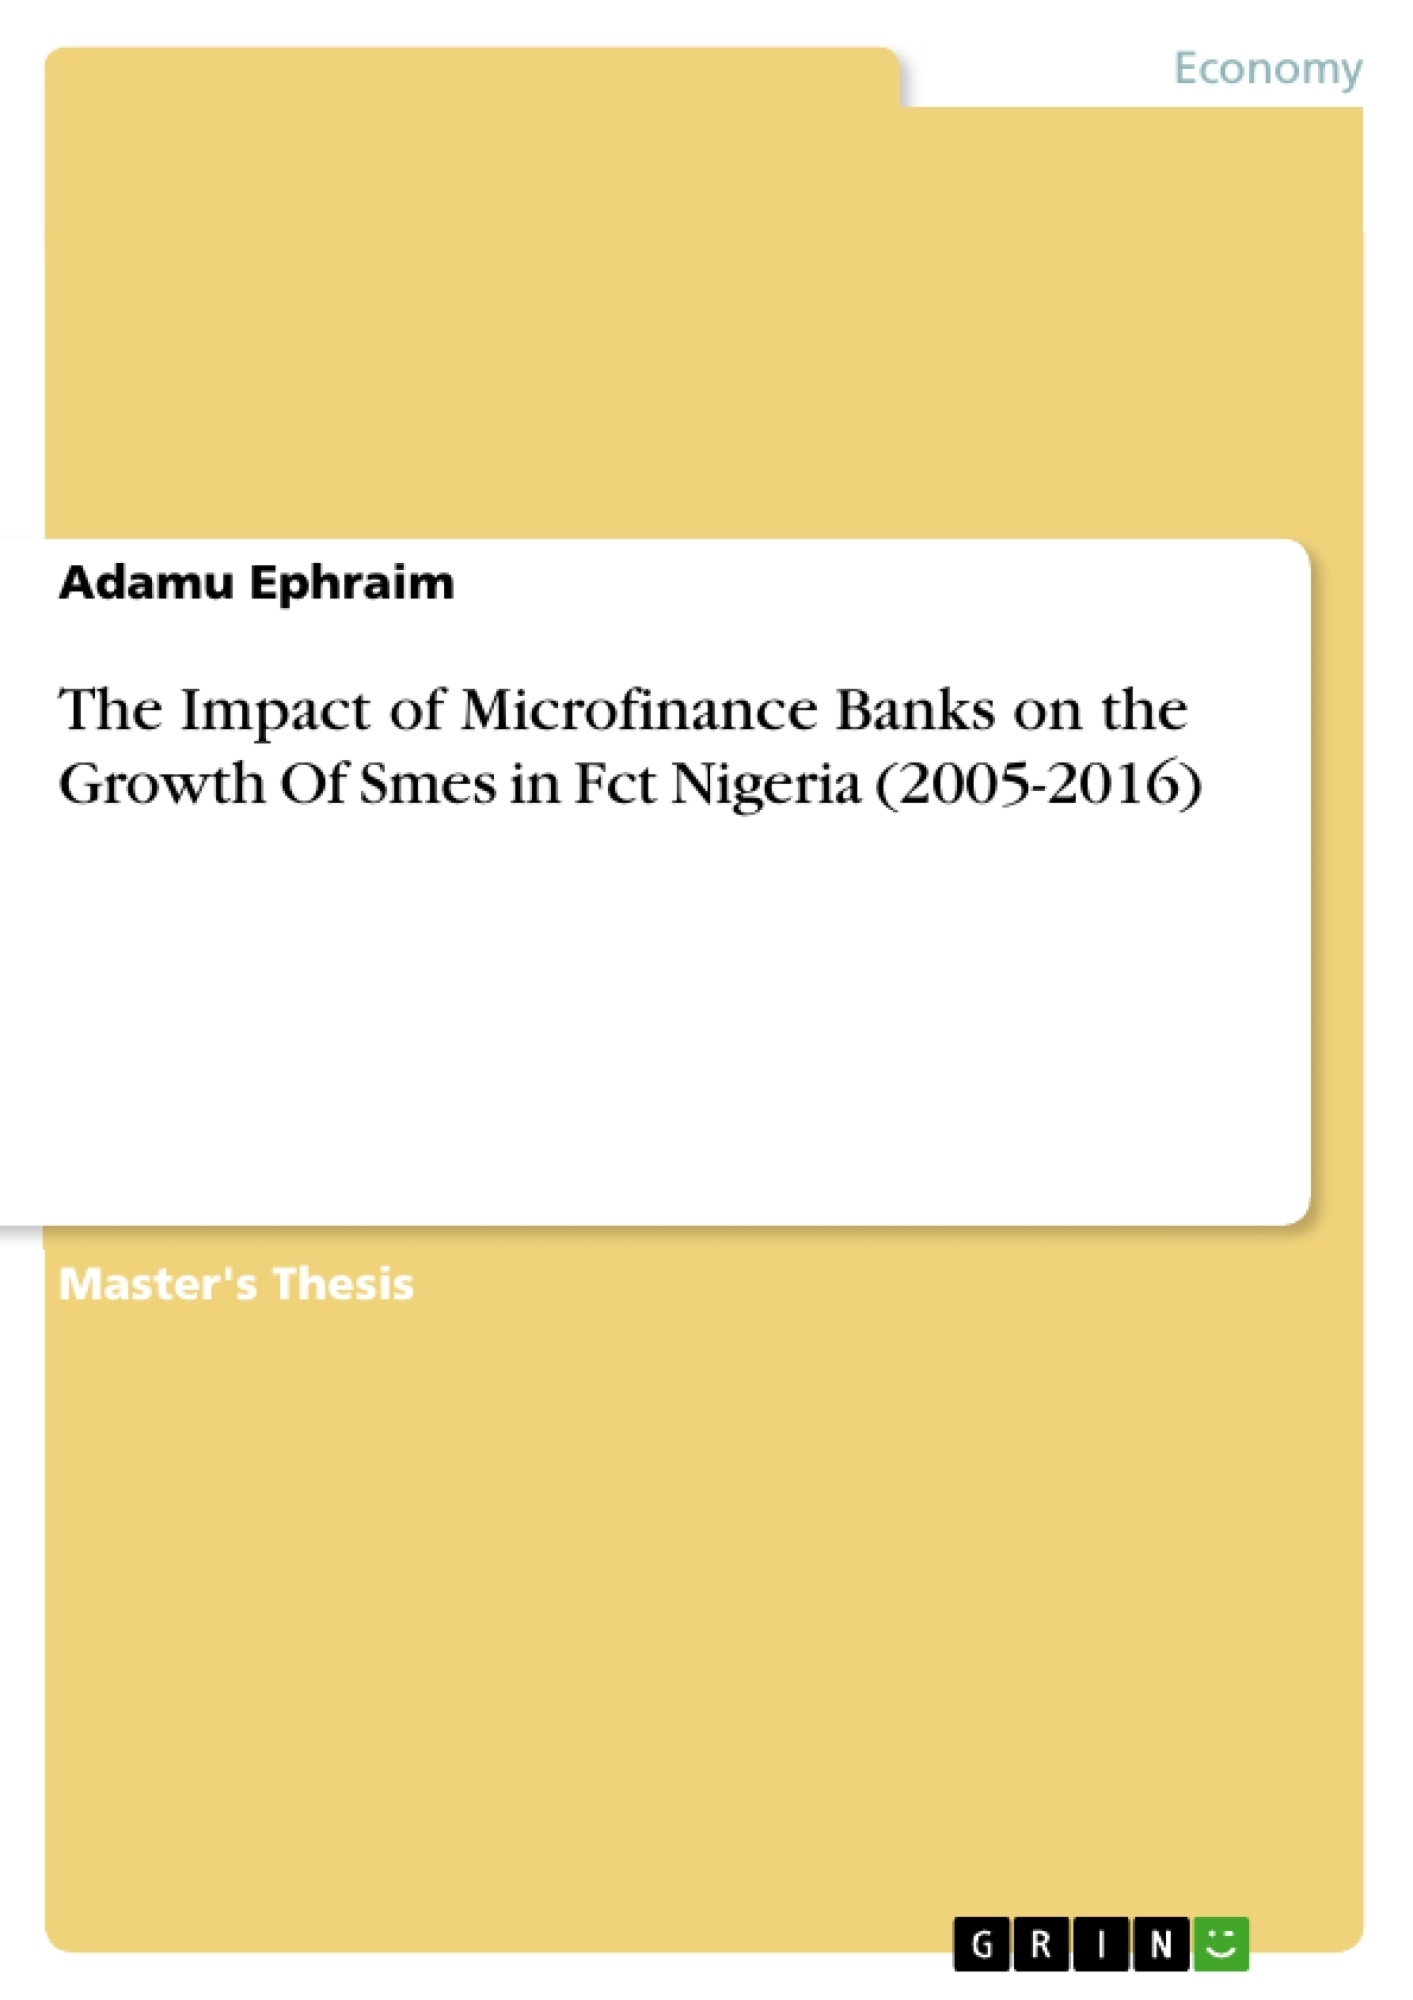 Title: The Impact of Microfinance Banks on the Growth Of Smes in Fct Nigeria (2005-2016)